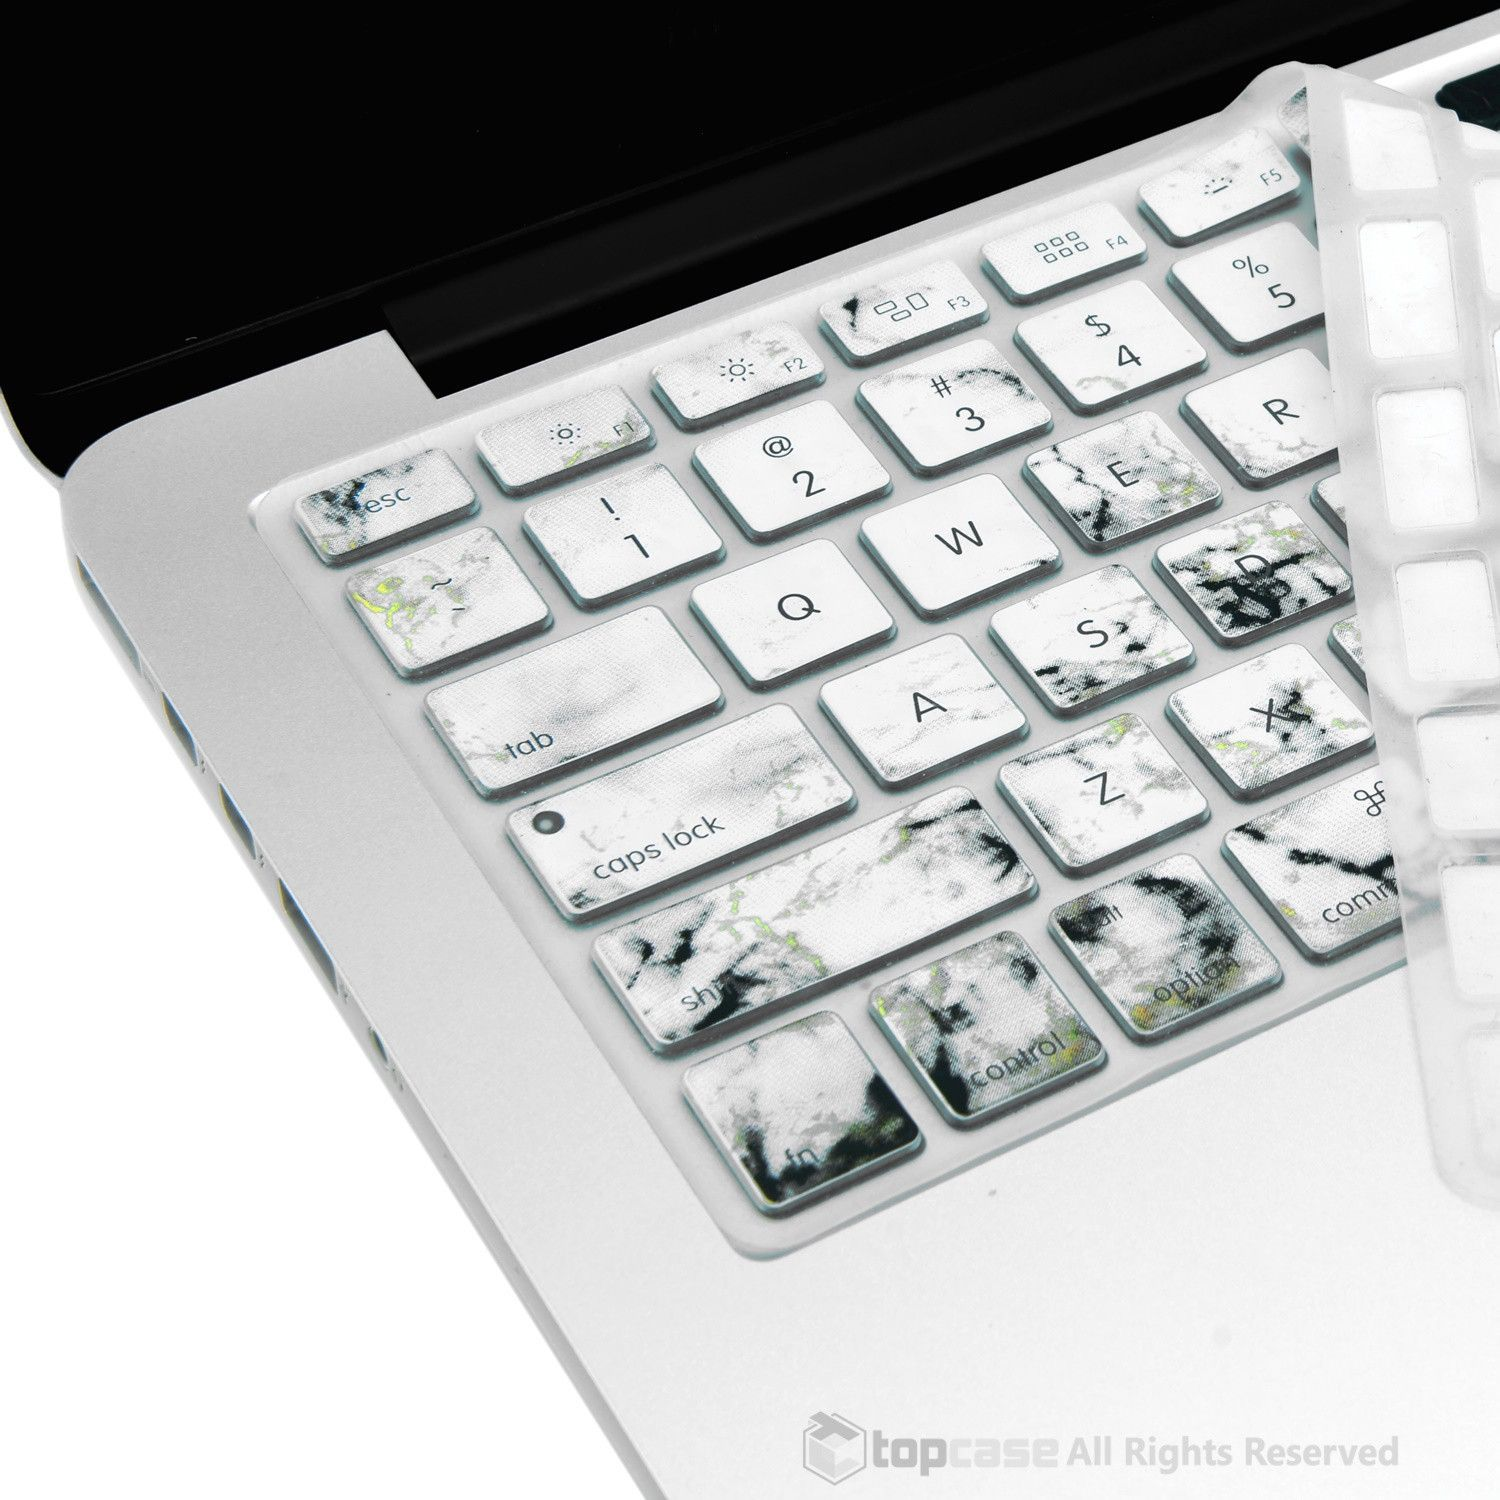 Marble Pattern Ultra Thin Soft Silicone Keyboard Cover for